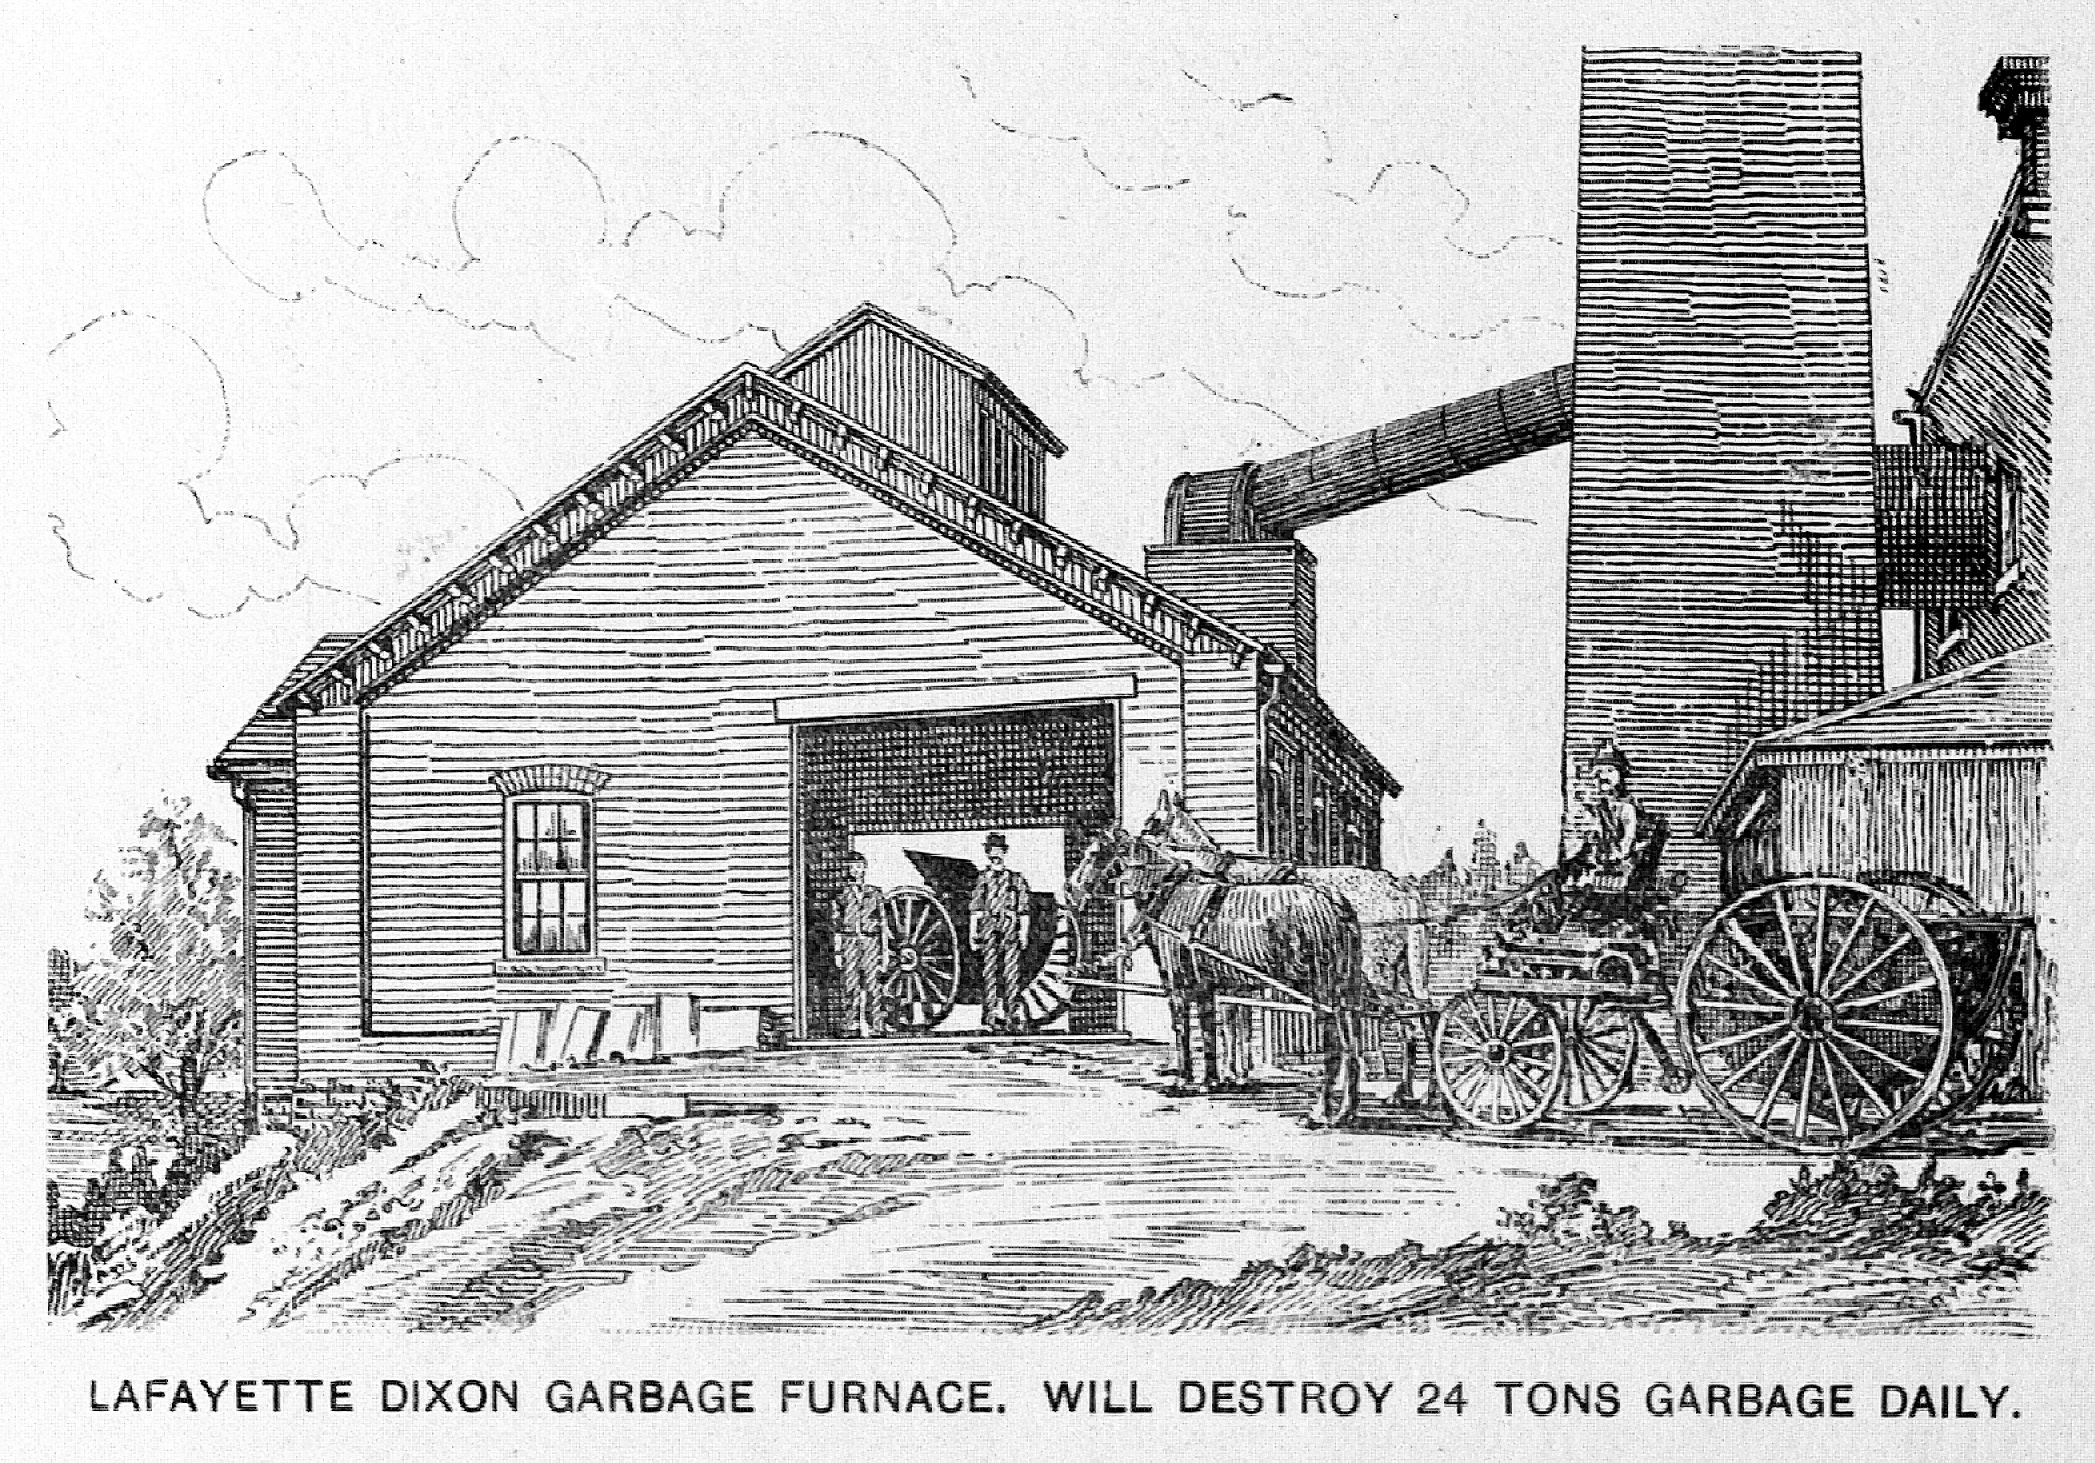 Line Drawing Of Garbage Furnace Facility And Horse Drawn Garbage